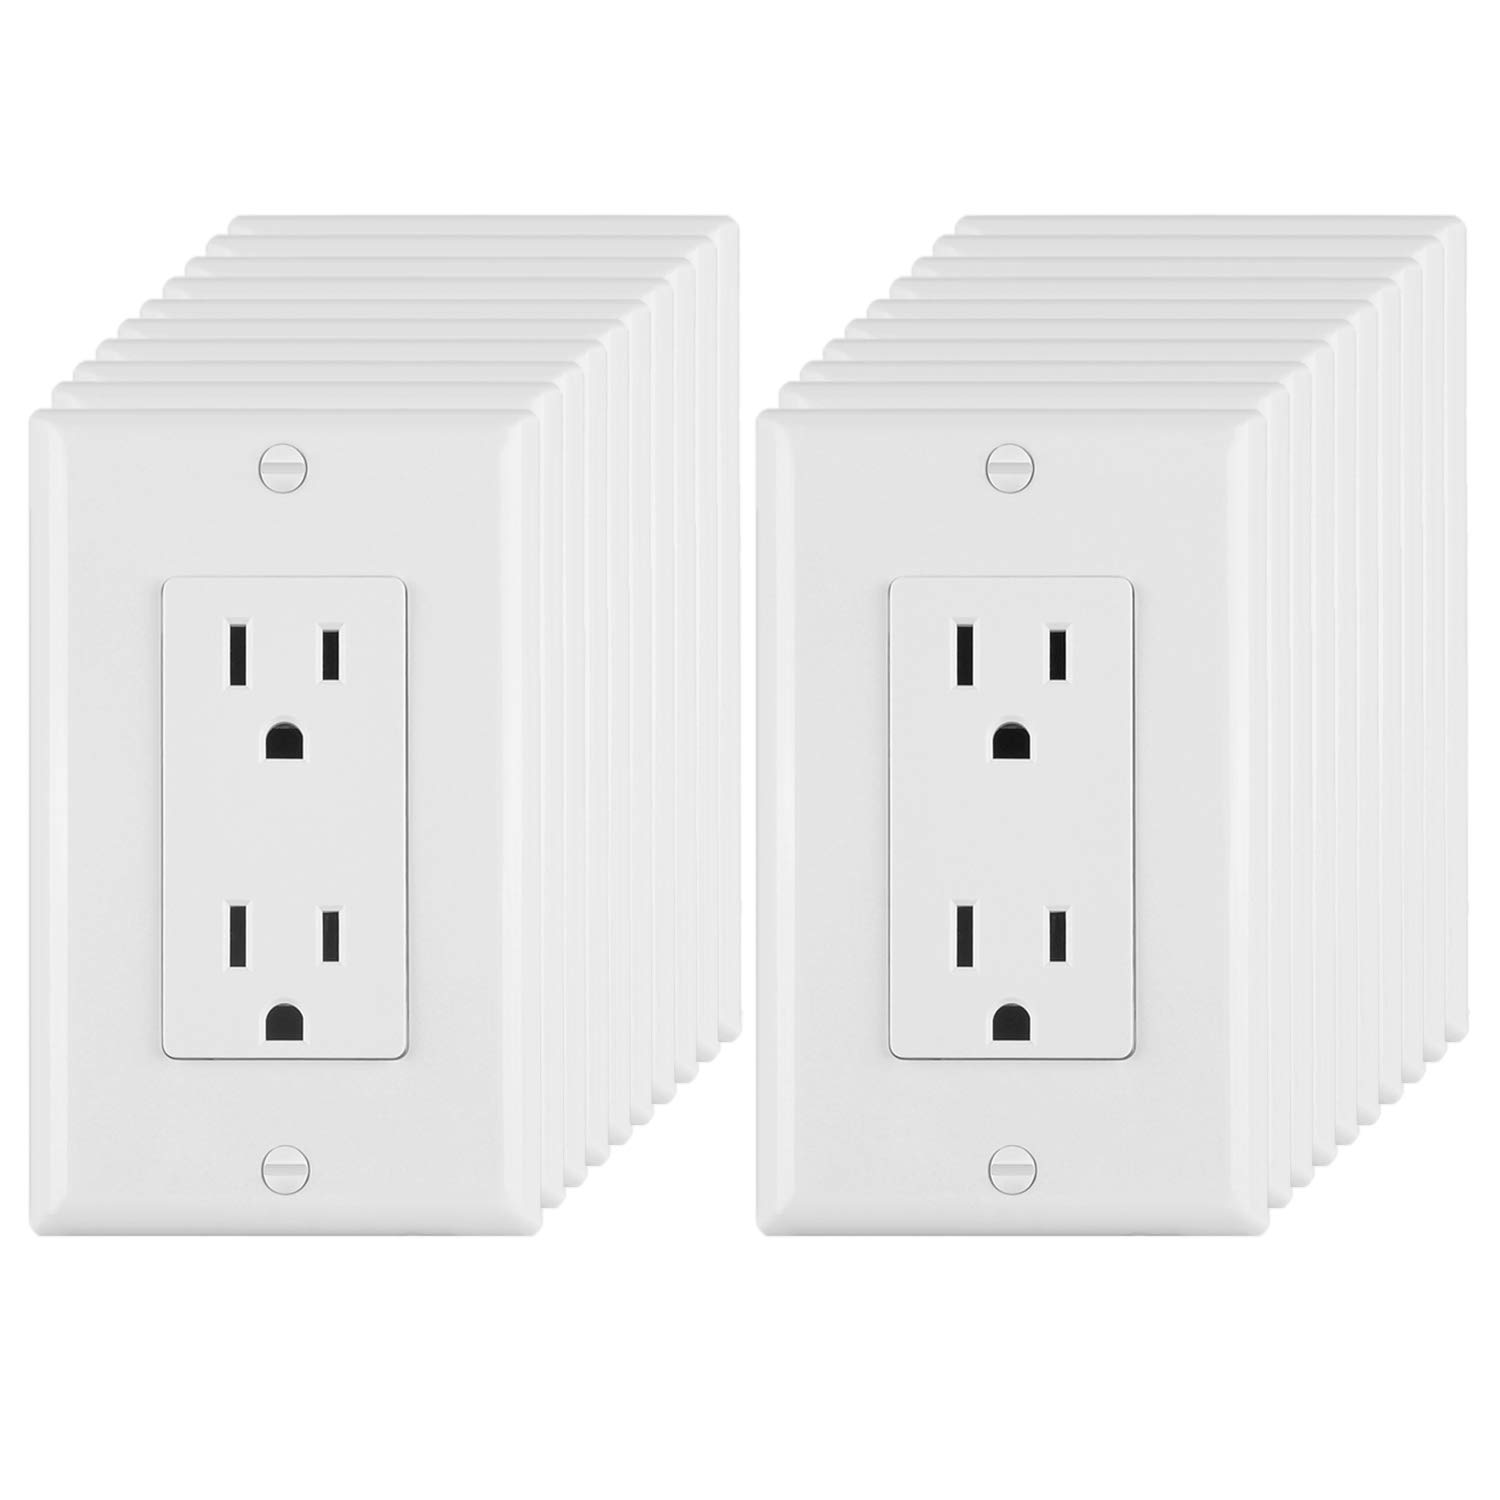 [20 Pack] BESTTEN 15A/125V Decorator Outlets, Electrical Duplex Receptacles, Non-Tamper-Resistant, Decor Wall Plates Included, Residential & Commercial Grade, UL Listed, White by BESTTEN